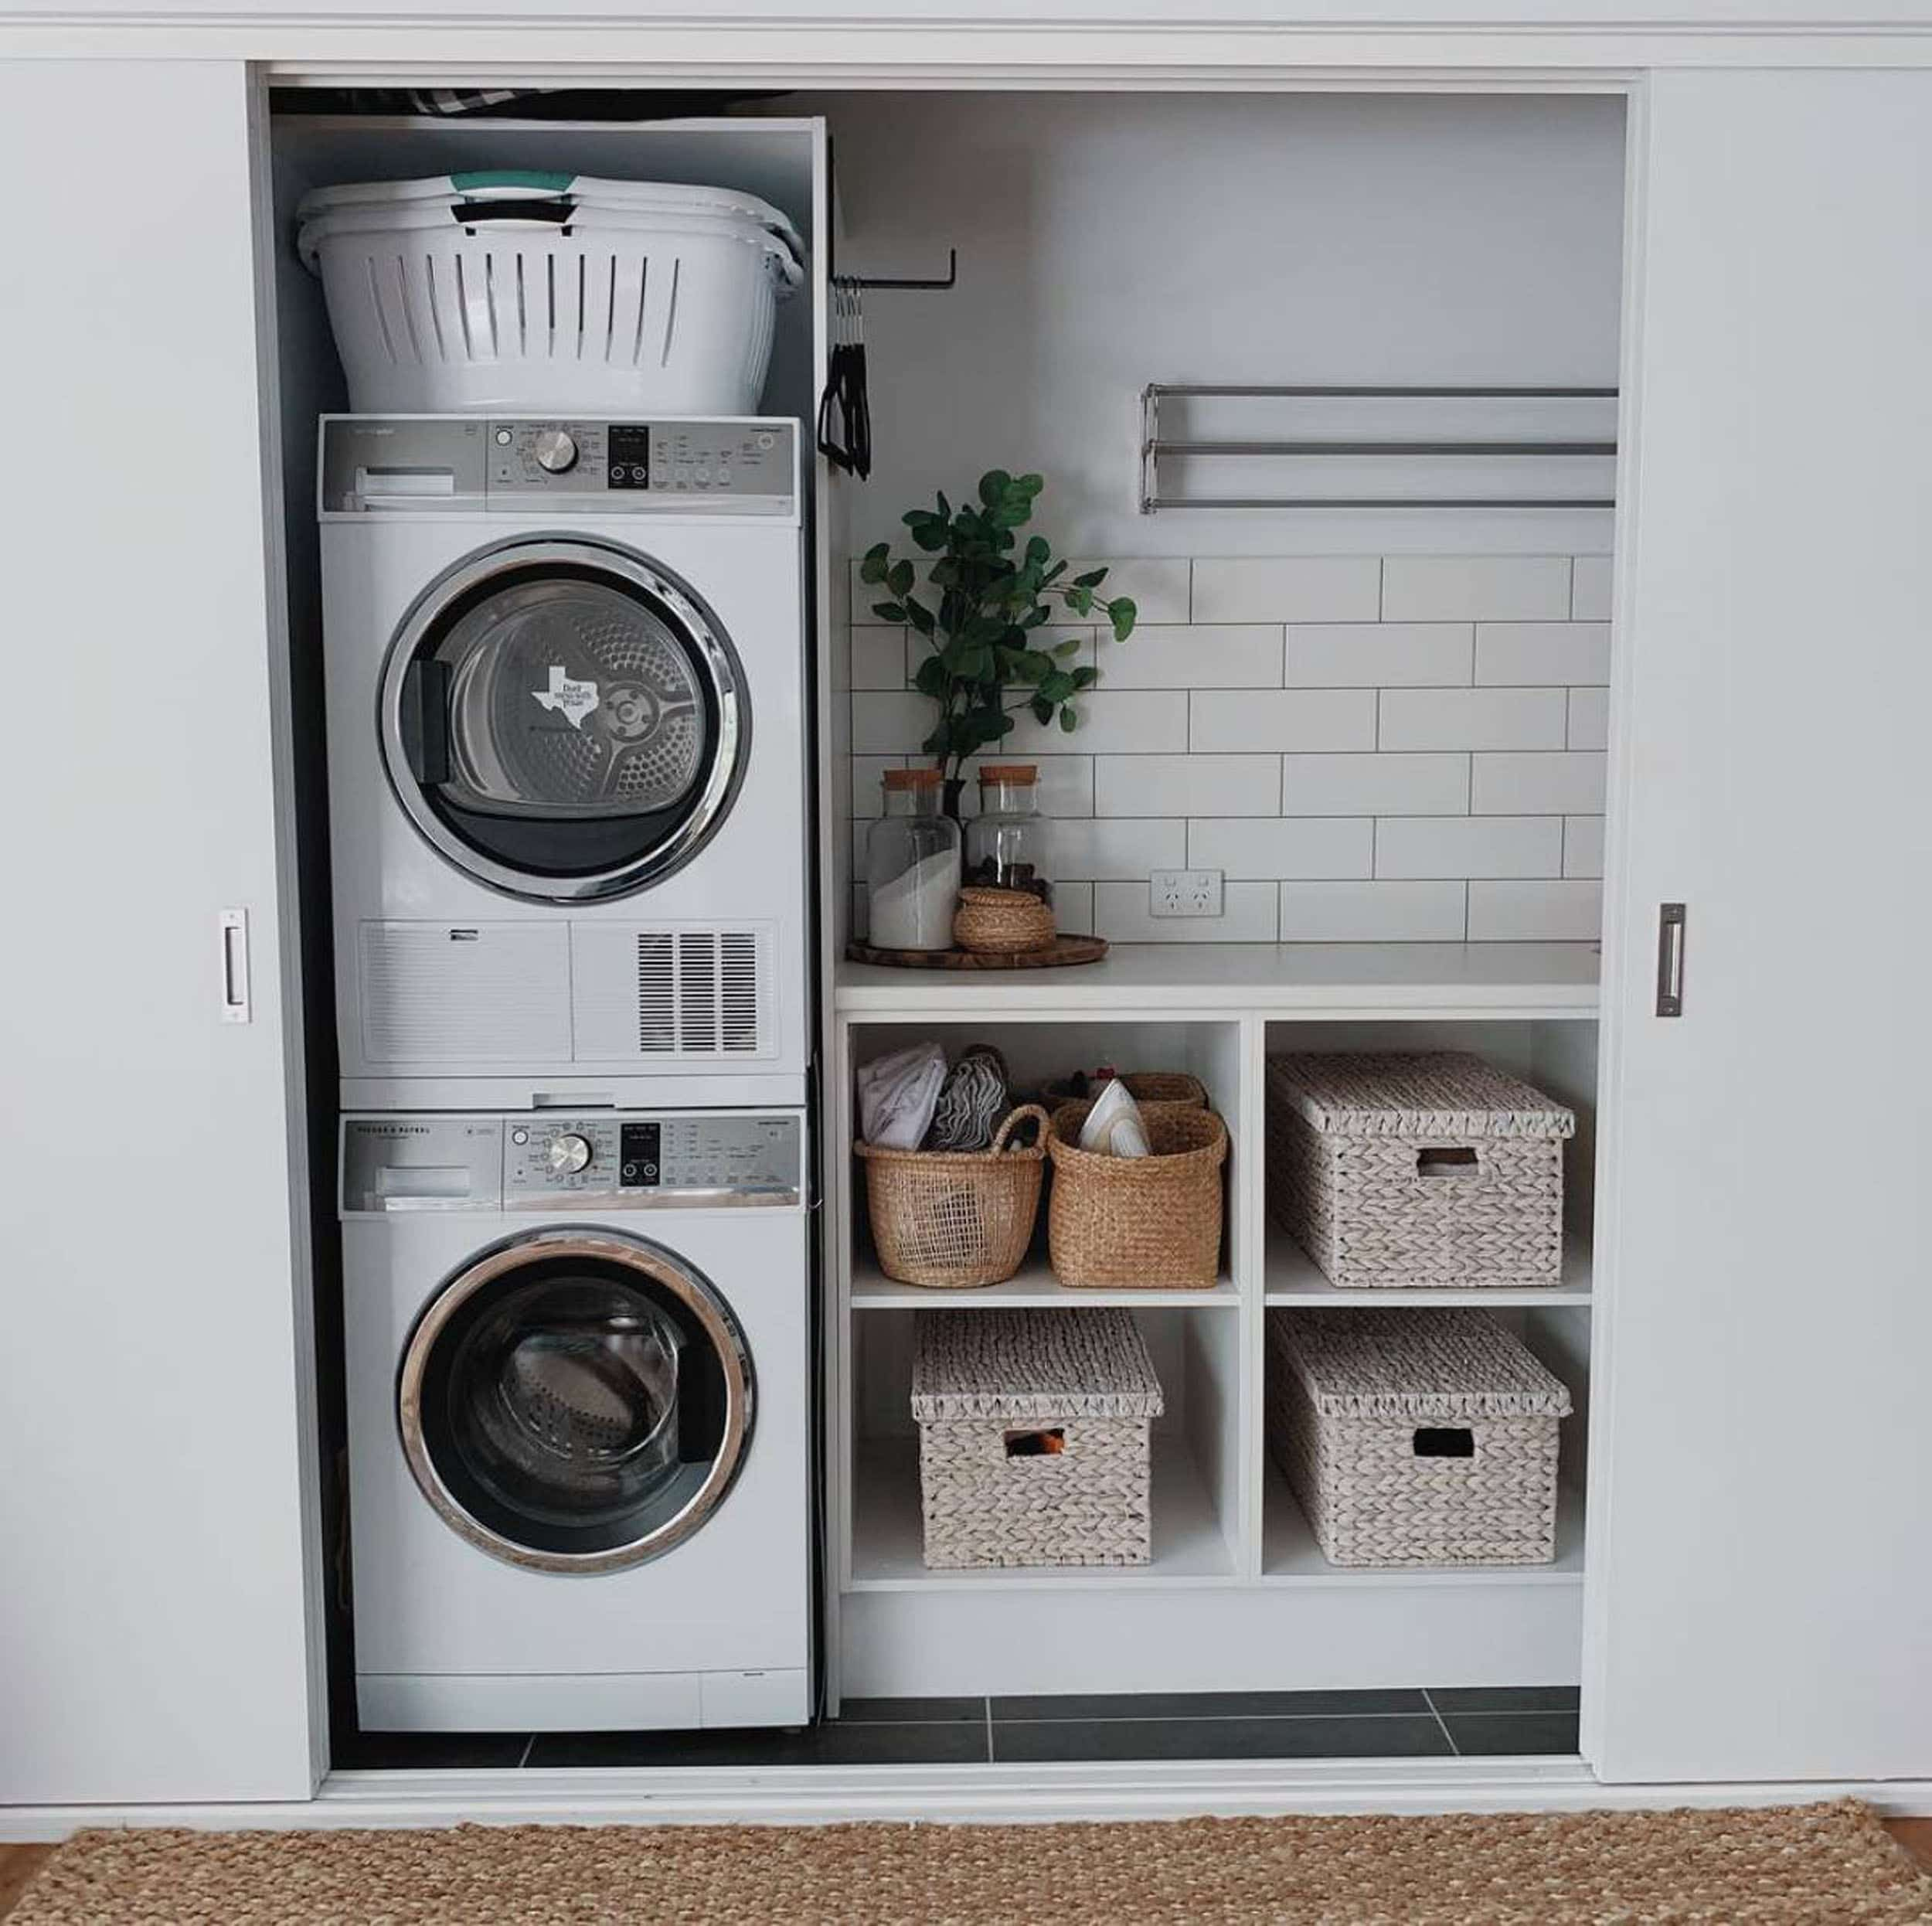 Designing Our Laundry Room The 7 Things Our Contractor And Plumber Told Us To Consider Emily Henderson